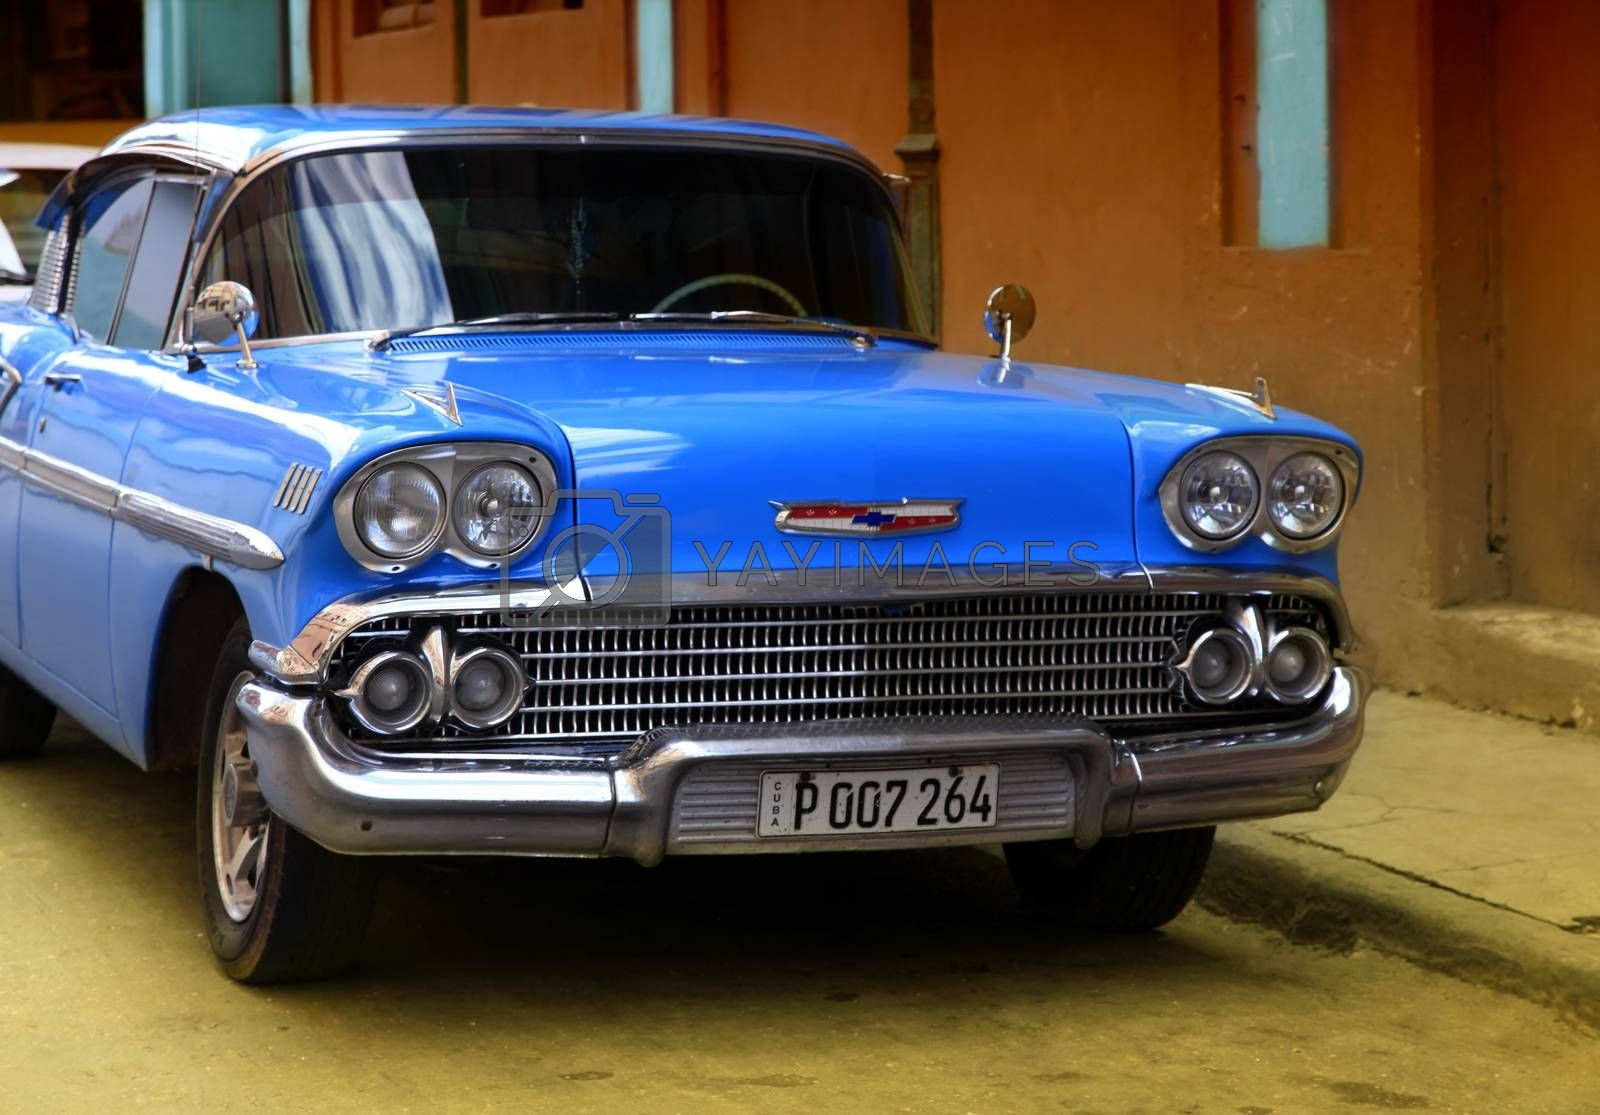 Havana, Cuba - January 11, 2019: Vintage cars moving on the streets of colorful Havana. A great variety of old cars exist In Cuba. On the streets cars from the first half of the 20th century can be found in magnificent conditions, which takes back in history and make the old atmosphere of the cities.